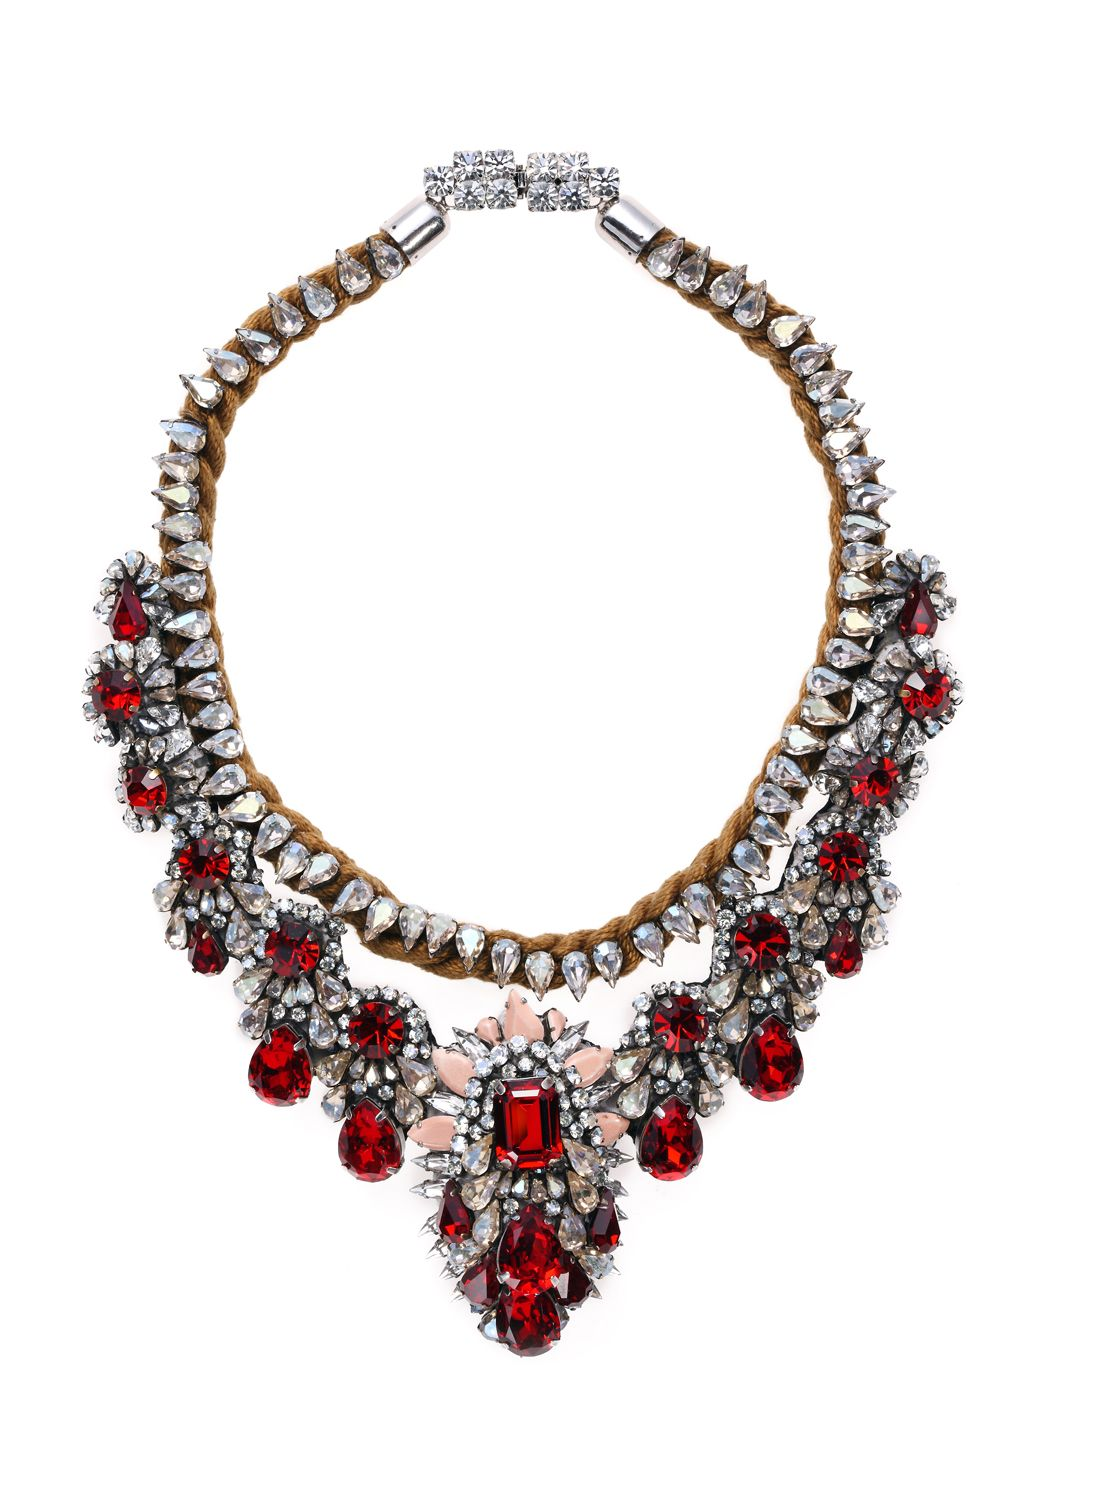 Jewelery trendy and accessories in shourouk collection